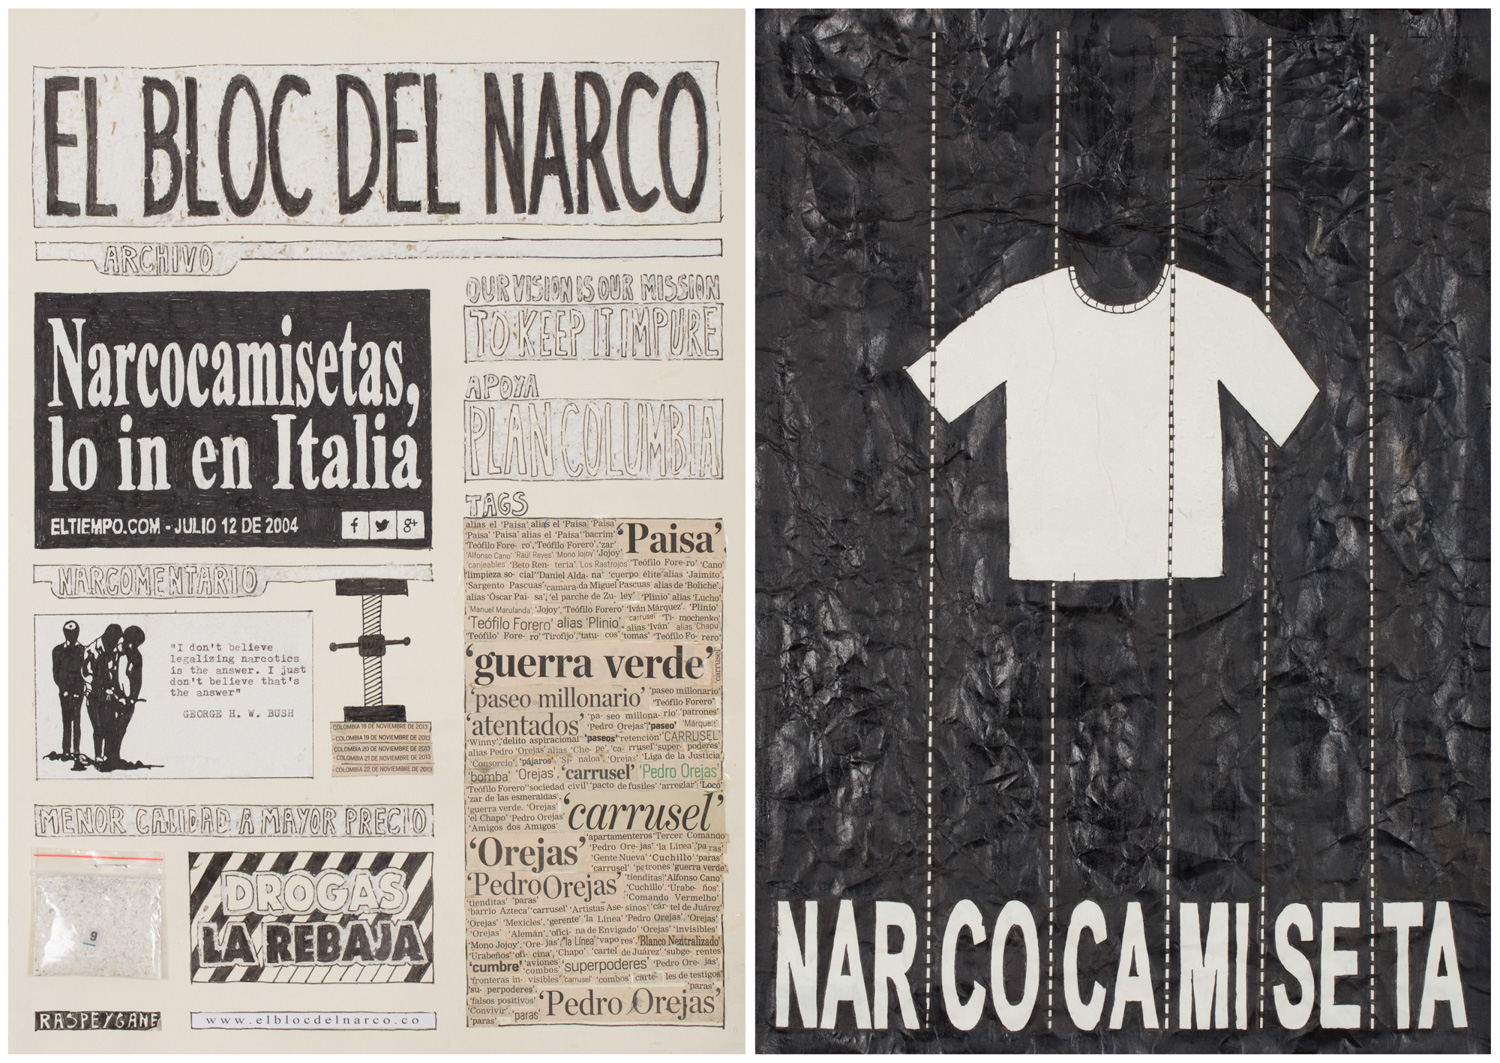 Camilo Restrepo. <em>El Bloc Del Narco #9, </em> 2016. Ink, water-soluble wax pastel, tape, glue, newspaper clippings, staples, plastic bag, paper dust and saliva on paper on paper, 16 1/2 x 24 (41.9 x 61 cm)